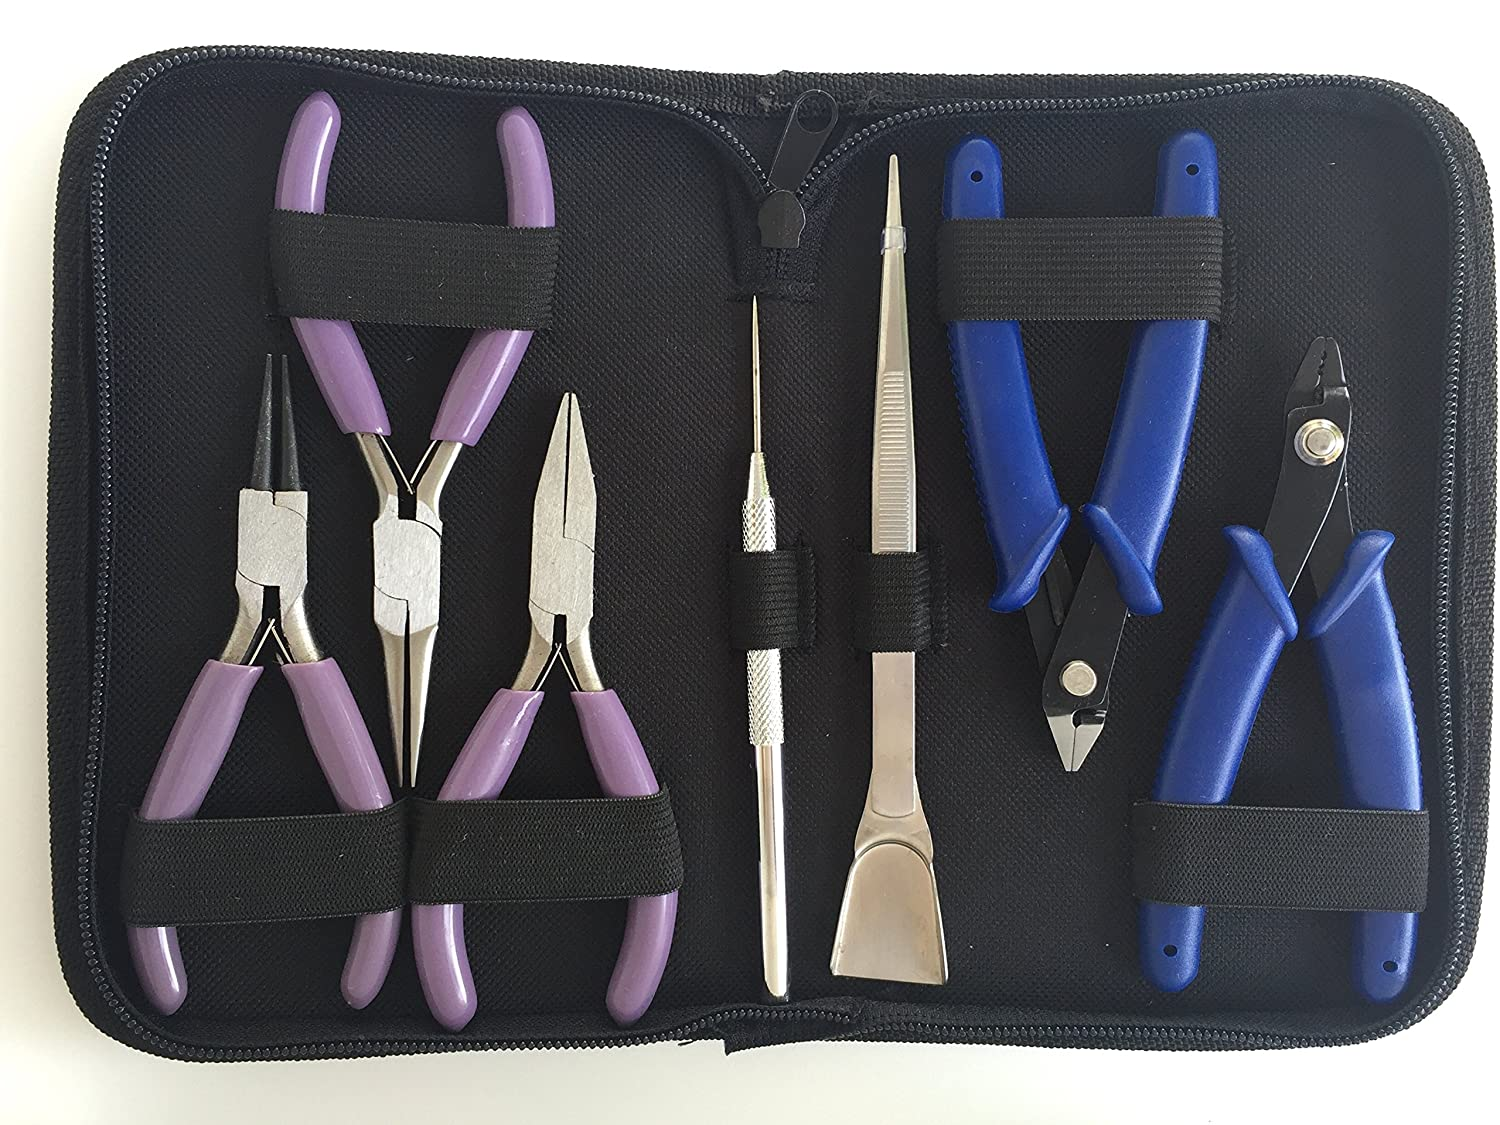 Jewelry Tools, High Grade Jewelry Pliers Including the Necessary Crimper, Organized Zipped Case for your Jewelry Making Tools Kem Products 4336836336